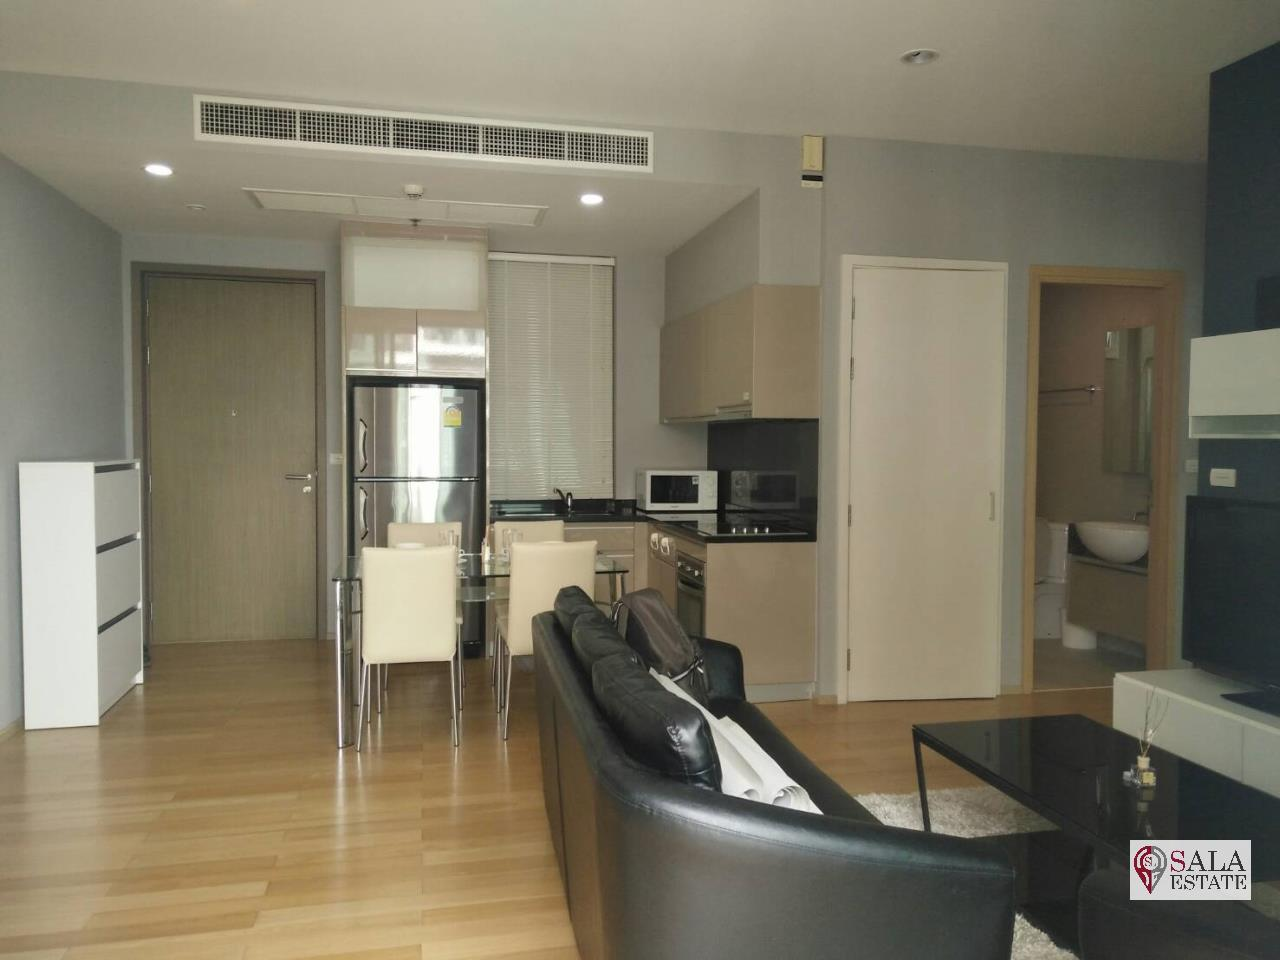 SALA ESTATE Agency's ( SELL WITH TENANT) 39 BY SANSIRI - BTS PROMPONG, 2 BEDROOMS 2 BATHROOMS, FULLY FURNISHED 6